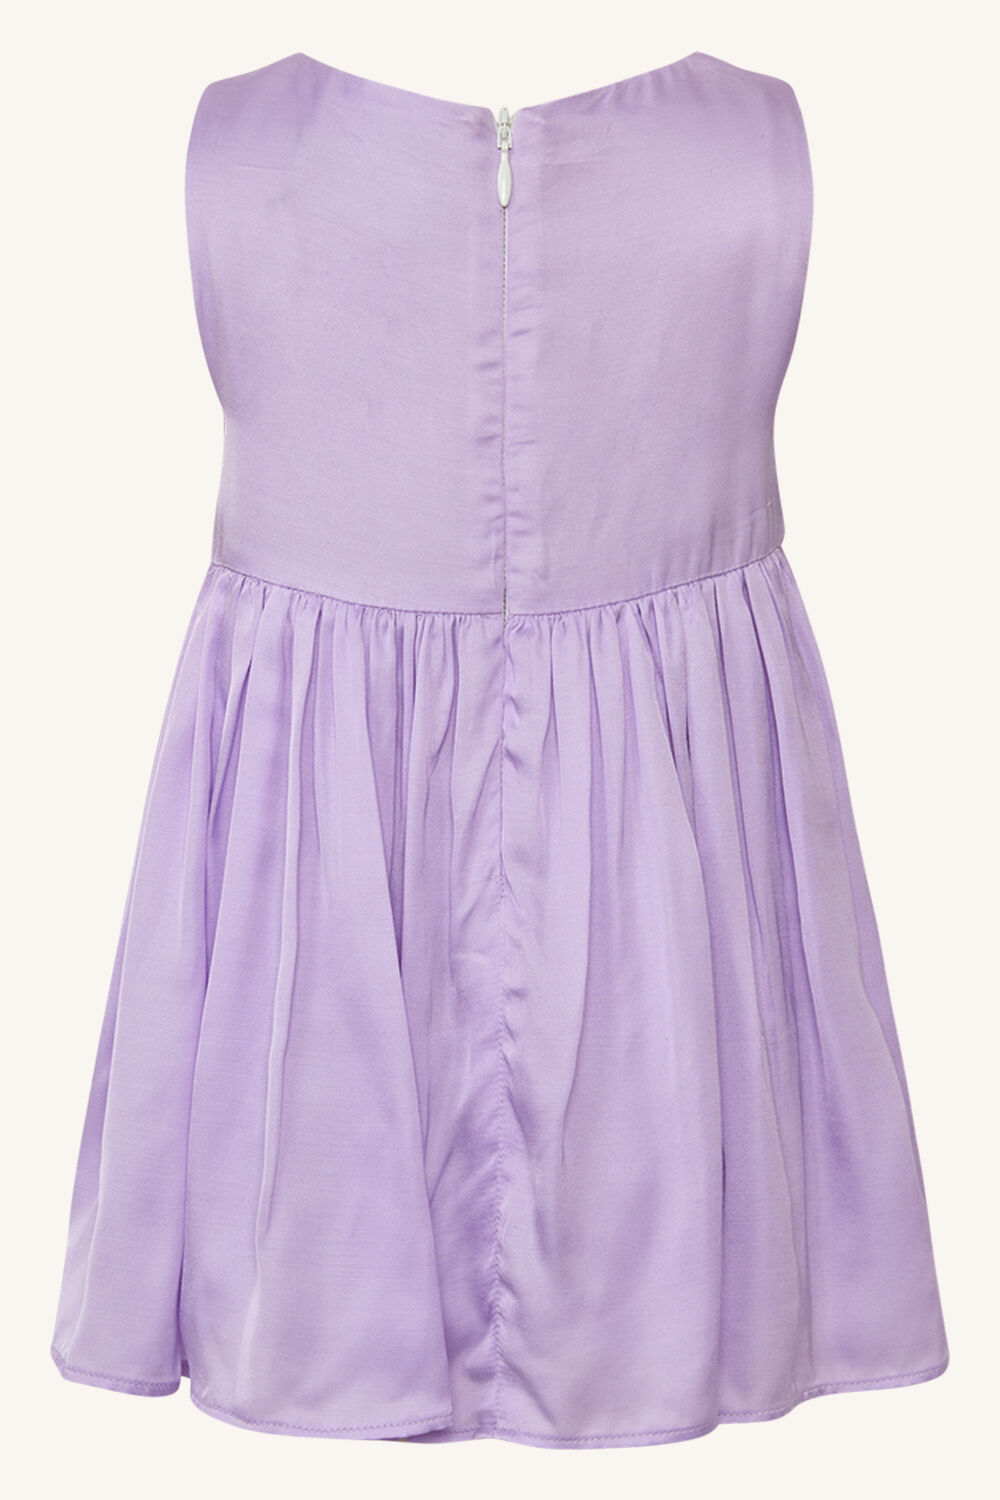 BABY GIRL BOWIE MINI DRESS in colour LILAC CHIFFON